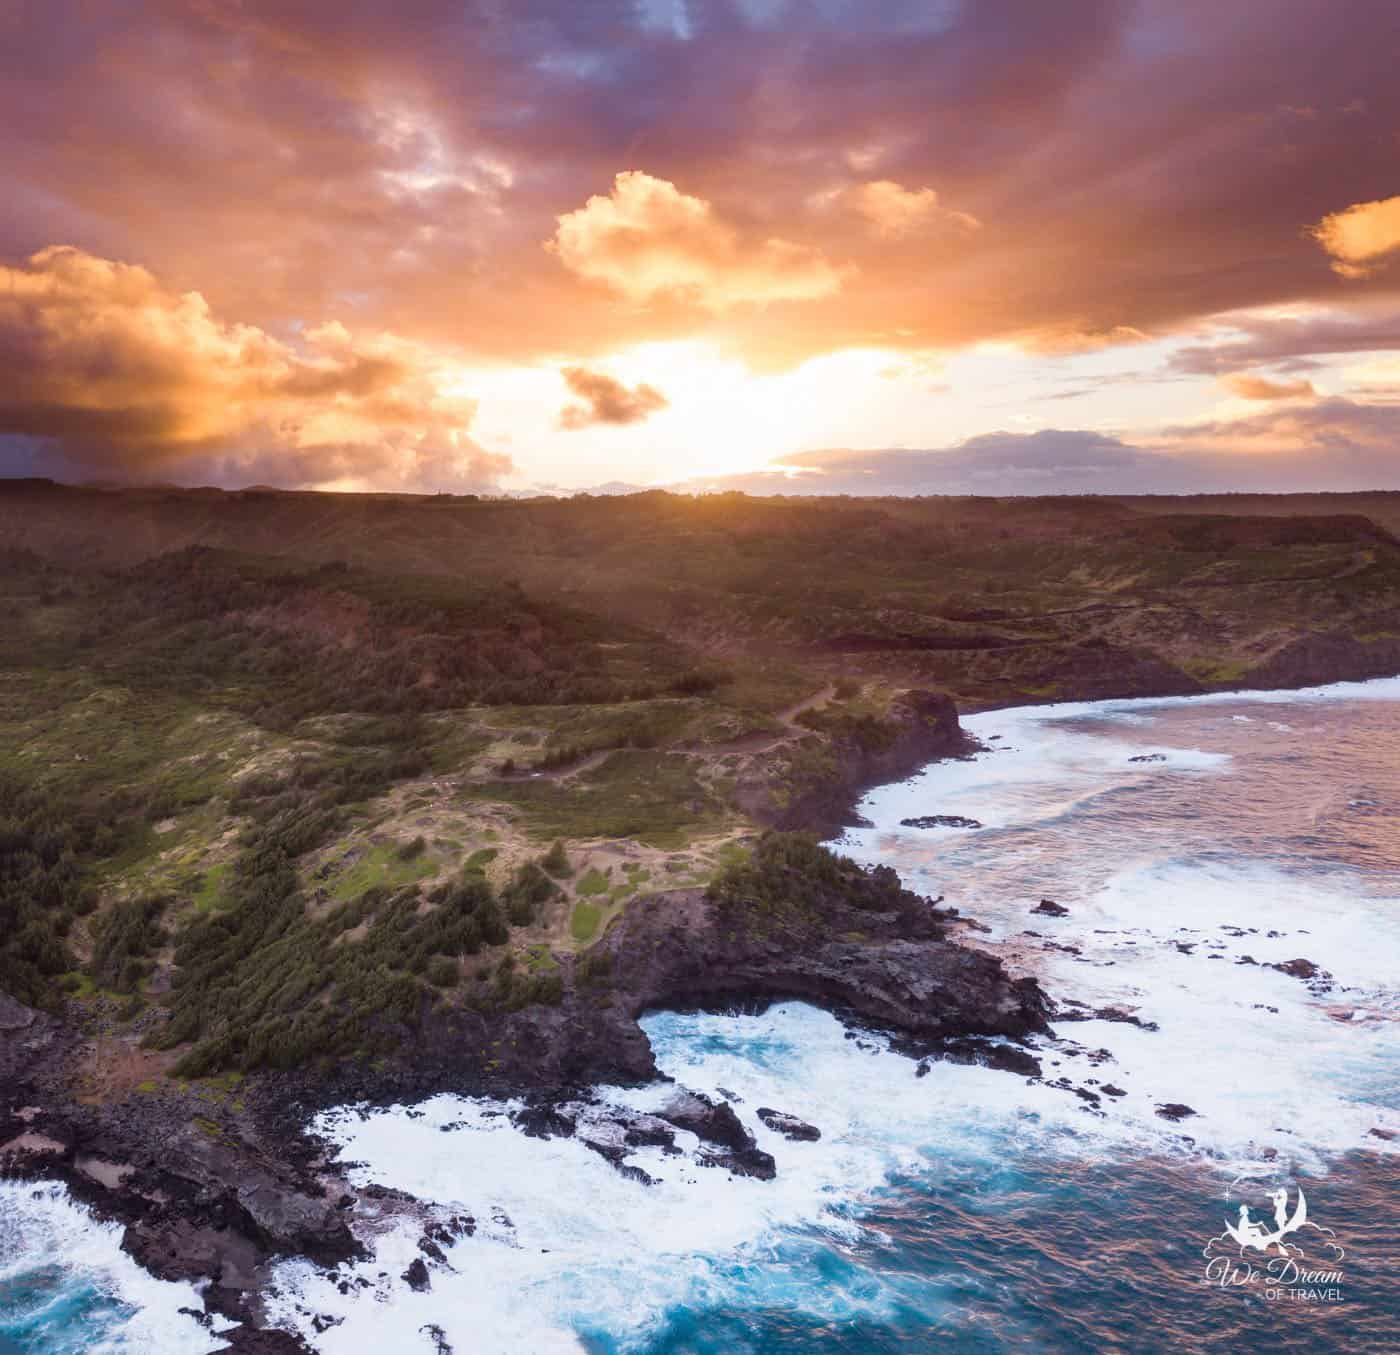 Photographing Maui coastline from the skies at sunset